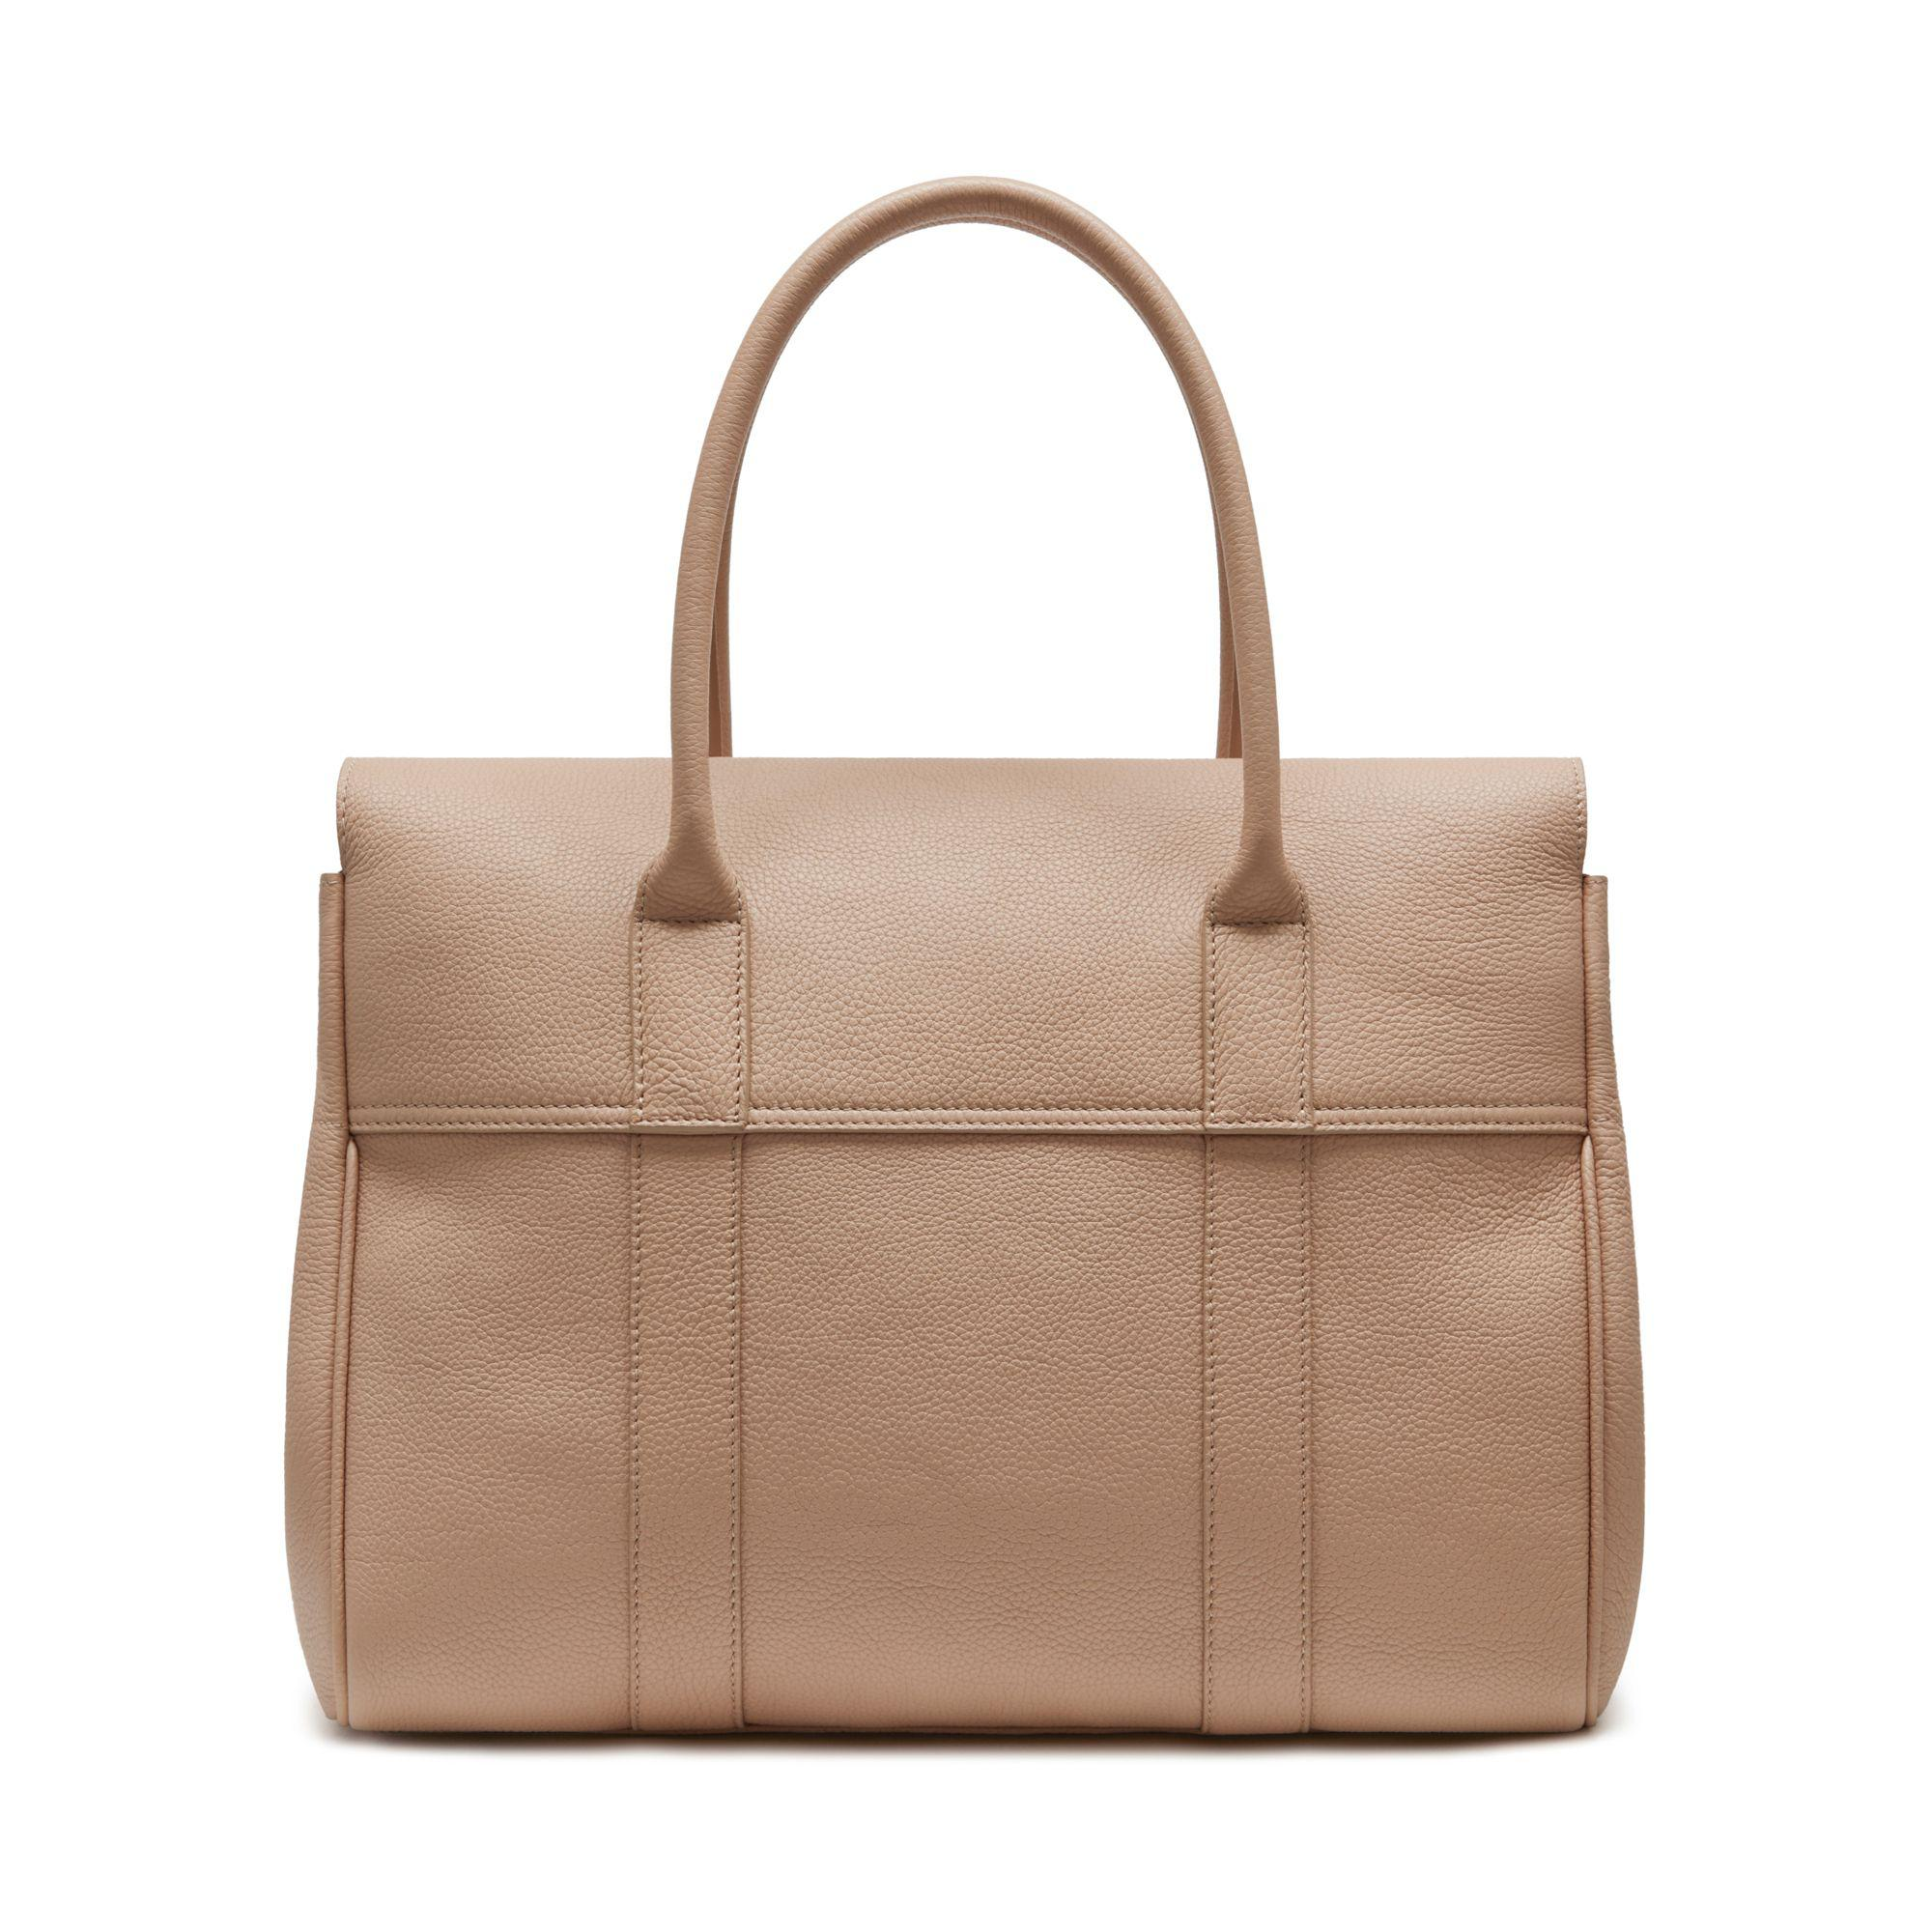 ... promo code for mulberry multicolor heritage bayswater lyst. view  fullscreen 739ce 85d90 b1311207c4b8b